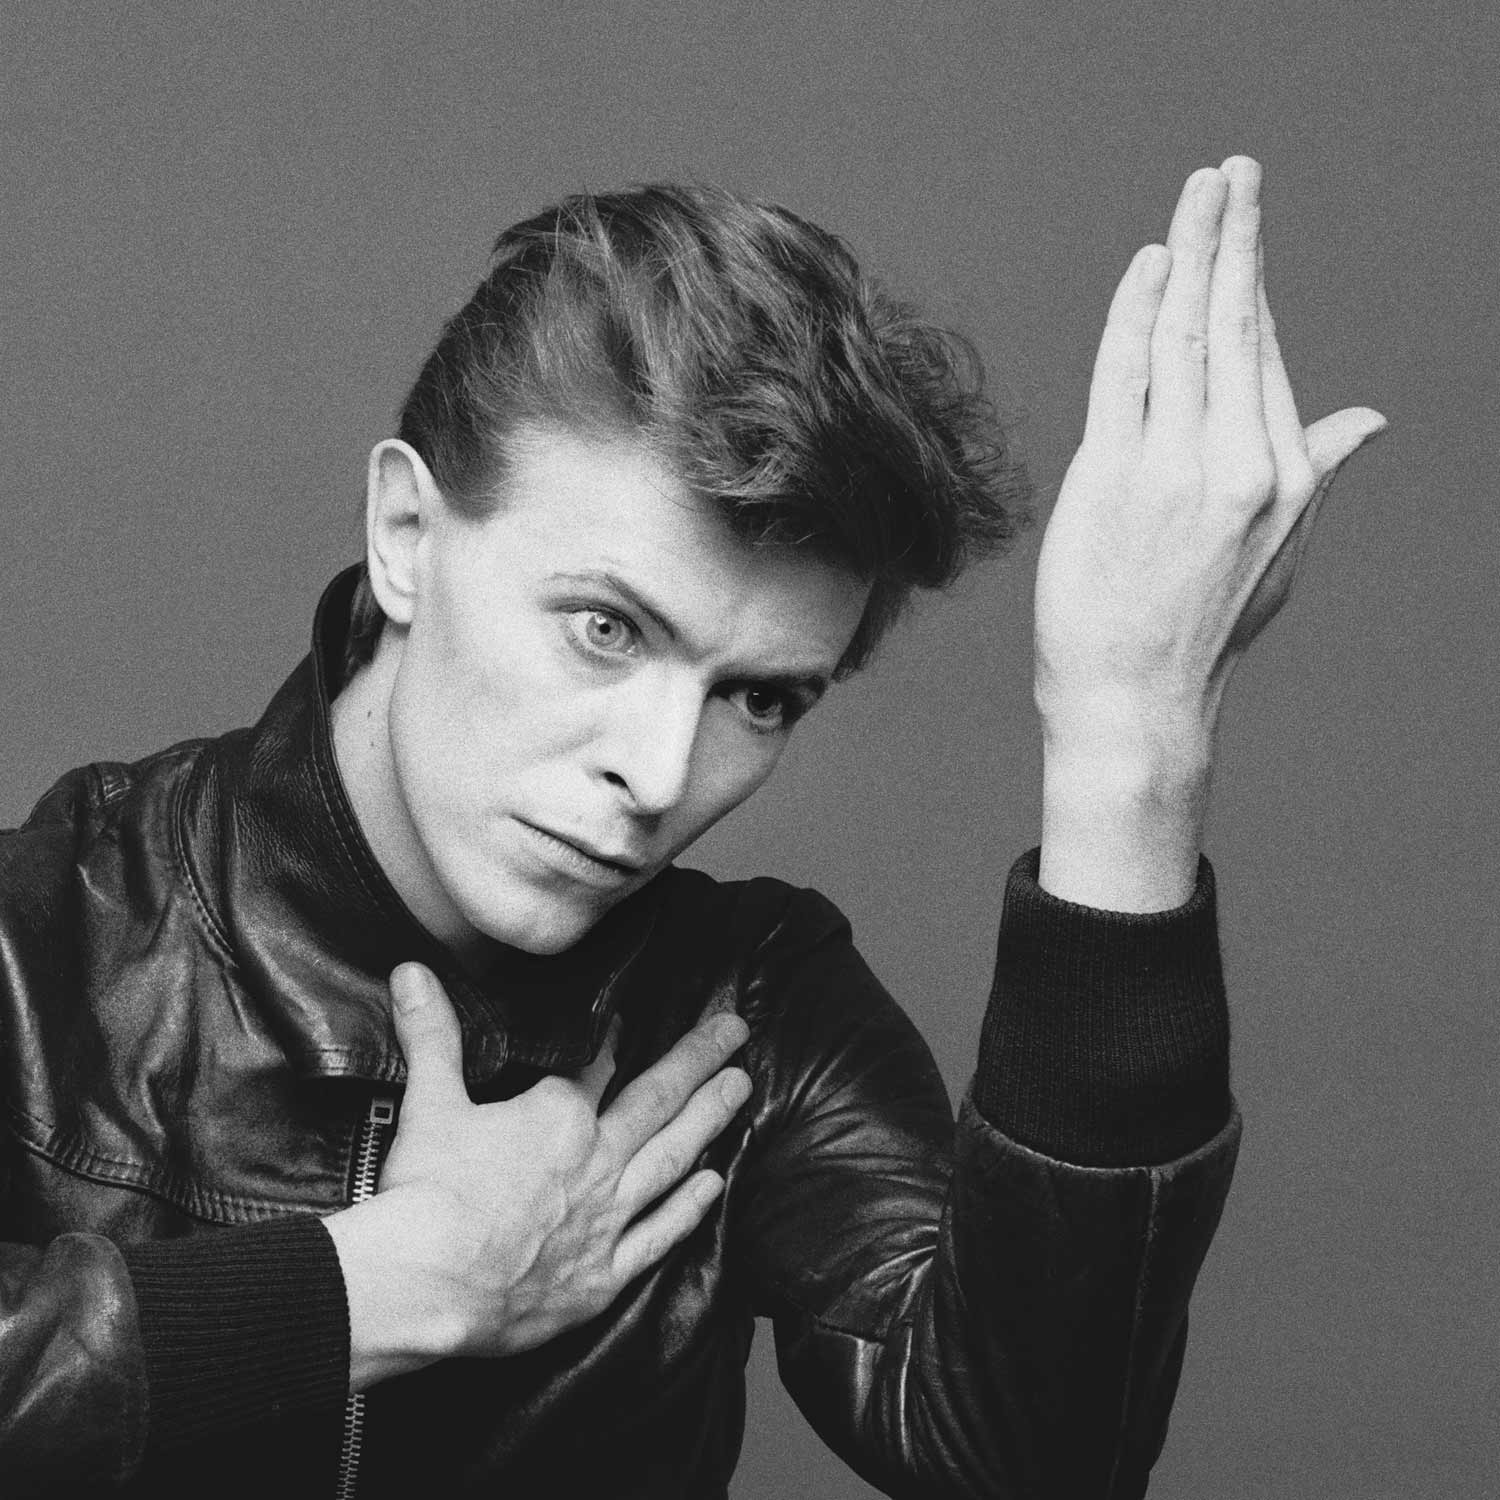 One Year On, We Should Remember David Bowie as Both Genius and Flawed Human